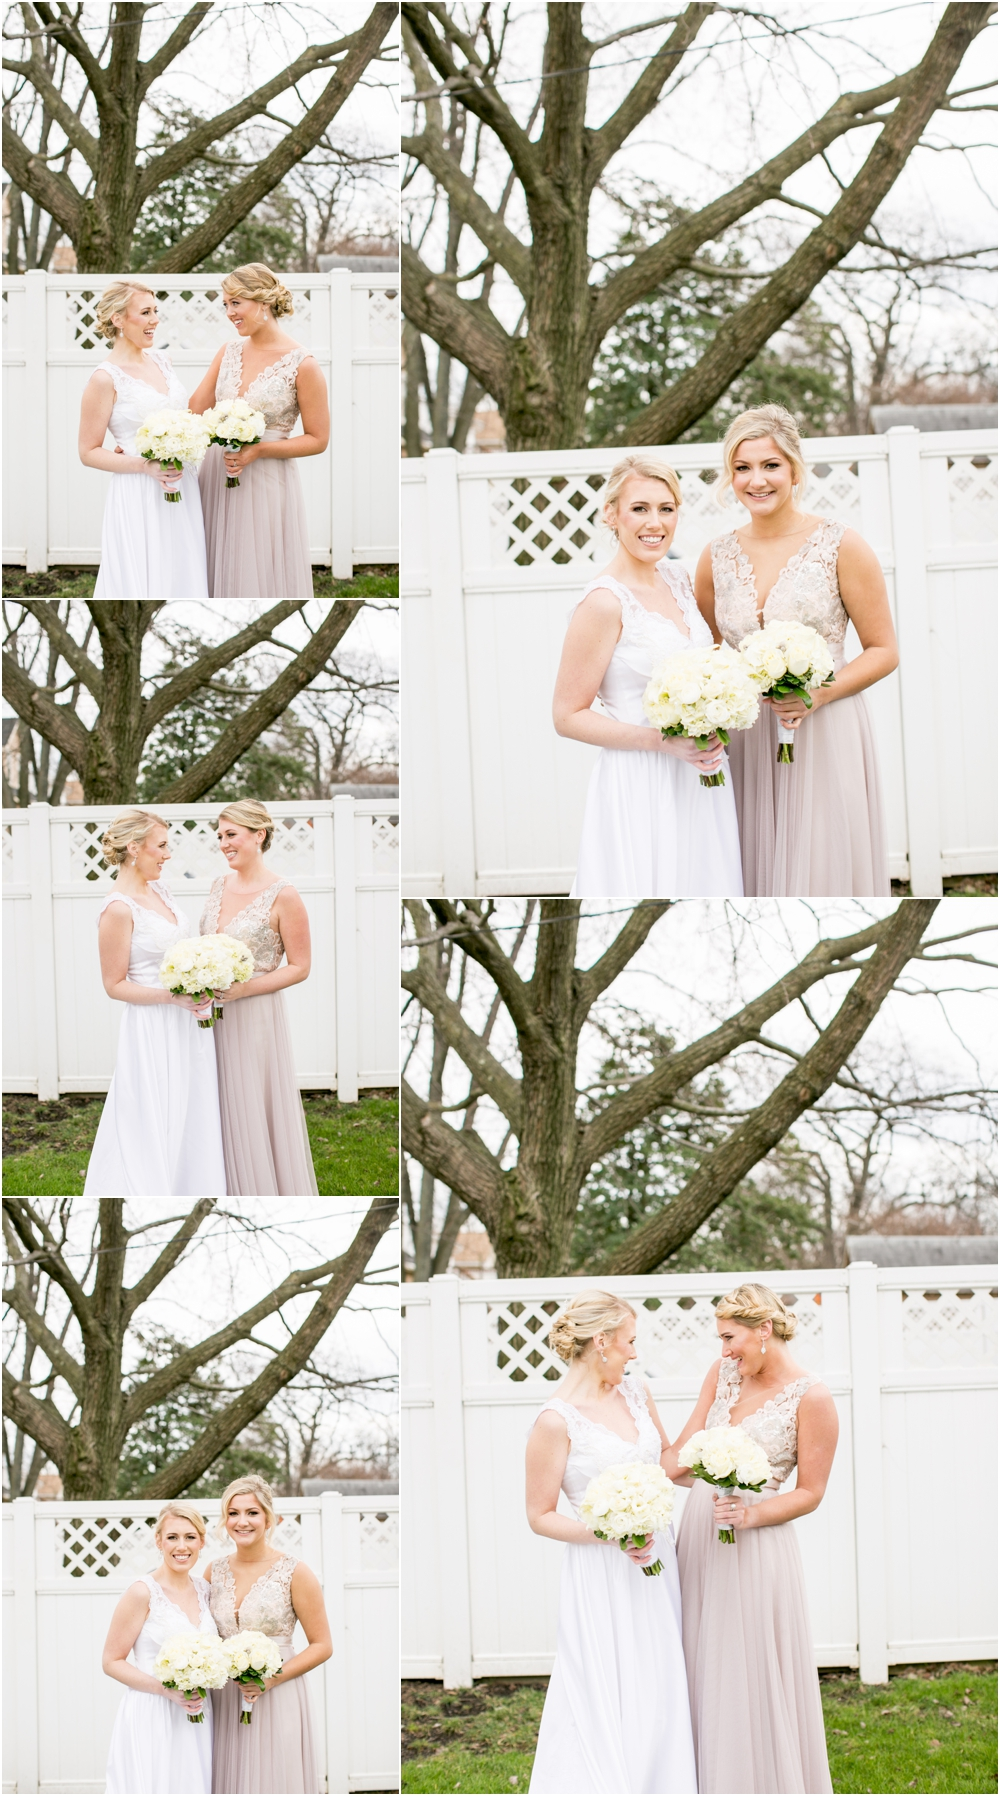 katelynn chris soper wedding valley country club town living radiant photogrpahy photos_0015.jpg